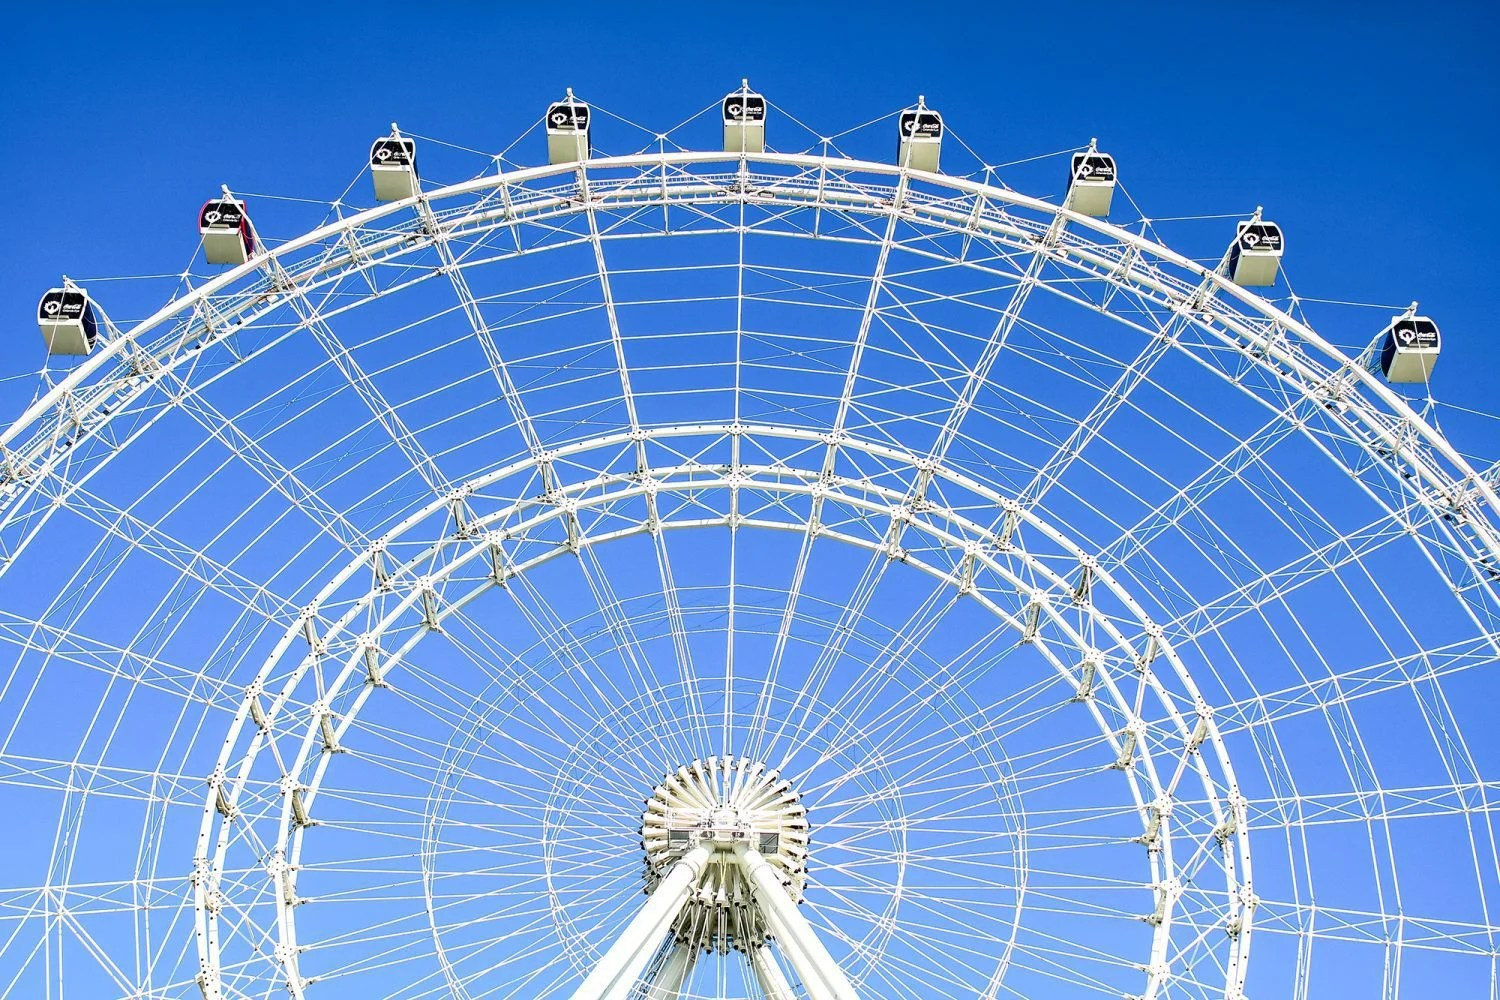 the orlando eye, i drive 360, international drive, i-drive 360, florida i drive tickets, i drive 360 tickets, orlando i-drive 360, International Drive Resort Area, international drive Orlando, international drive tickets, orlando attractions, things to do in orlando, top attractions orlando, things to do with kids in orlando, florida tourist attraction, things to do in florida